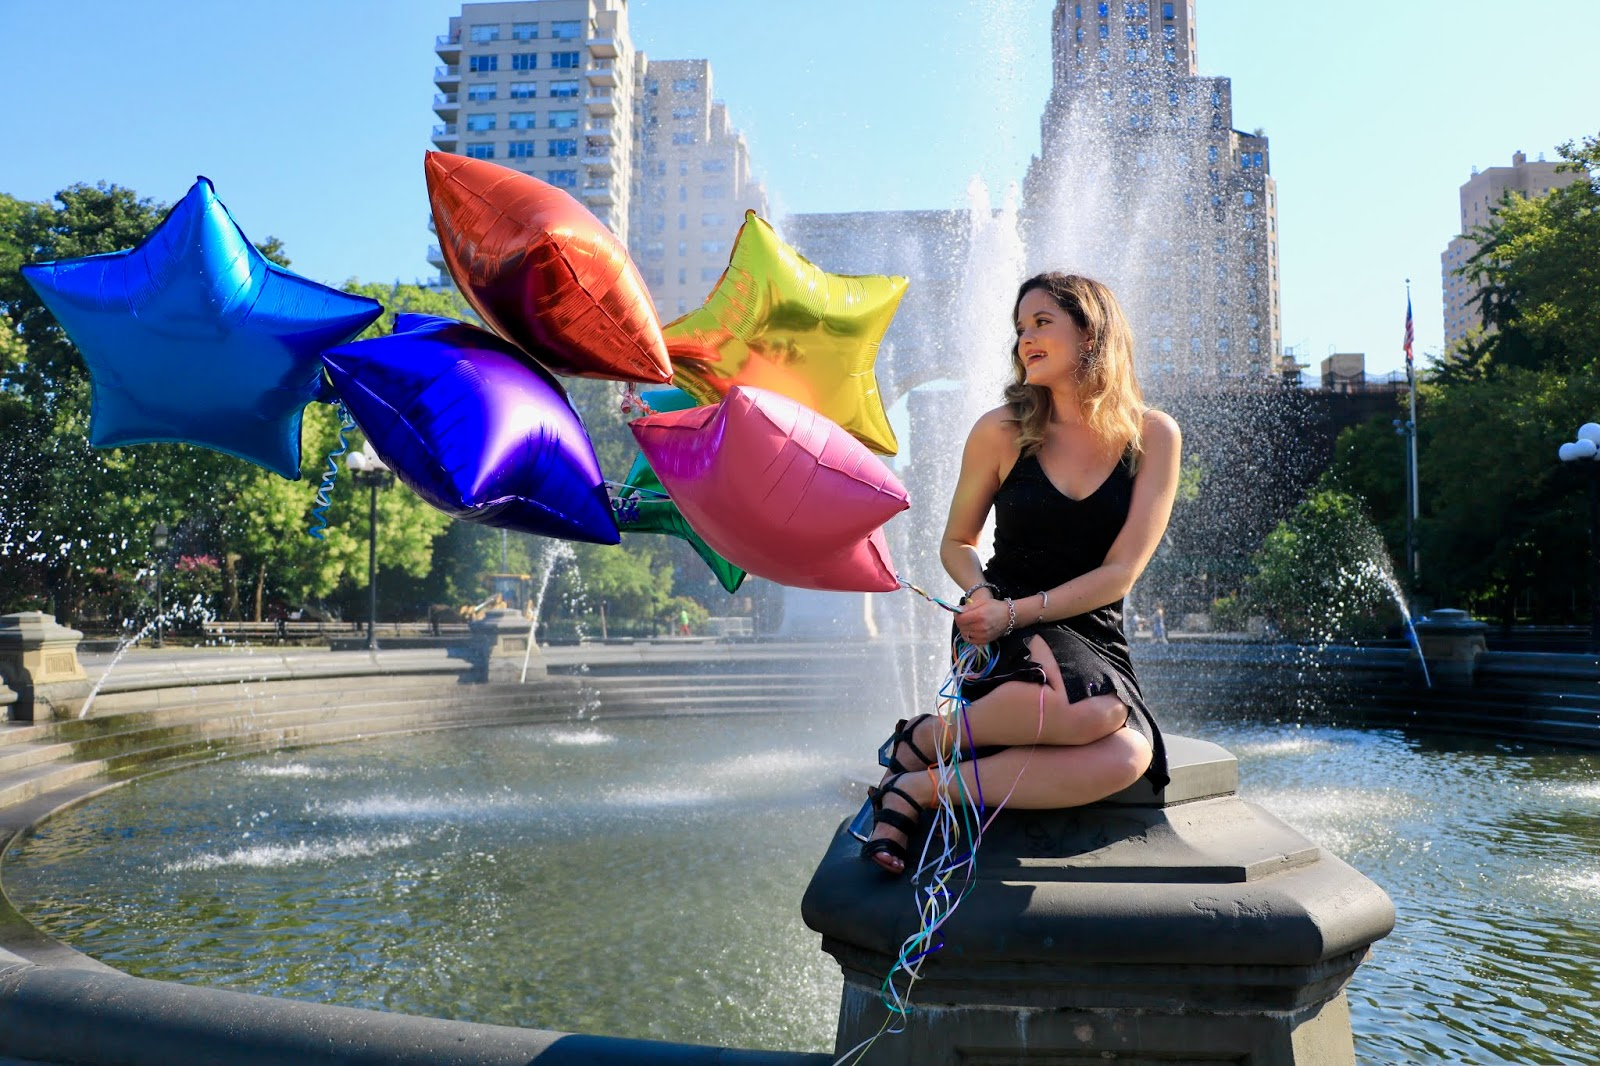 Nyc fashion blogger Kathleen Harper's Washington Square Park photo shoot in the Summer of 2019.